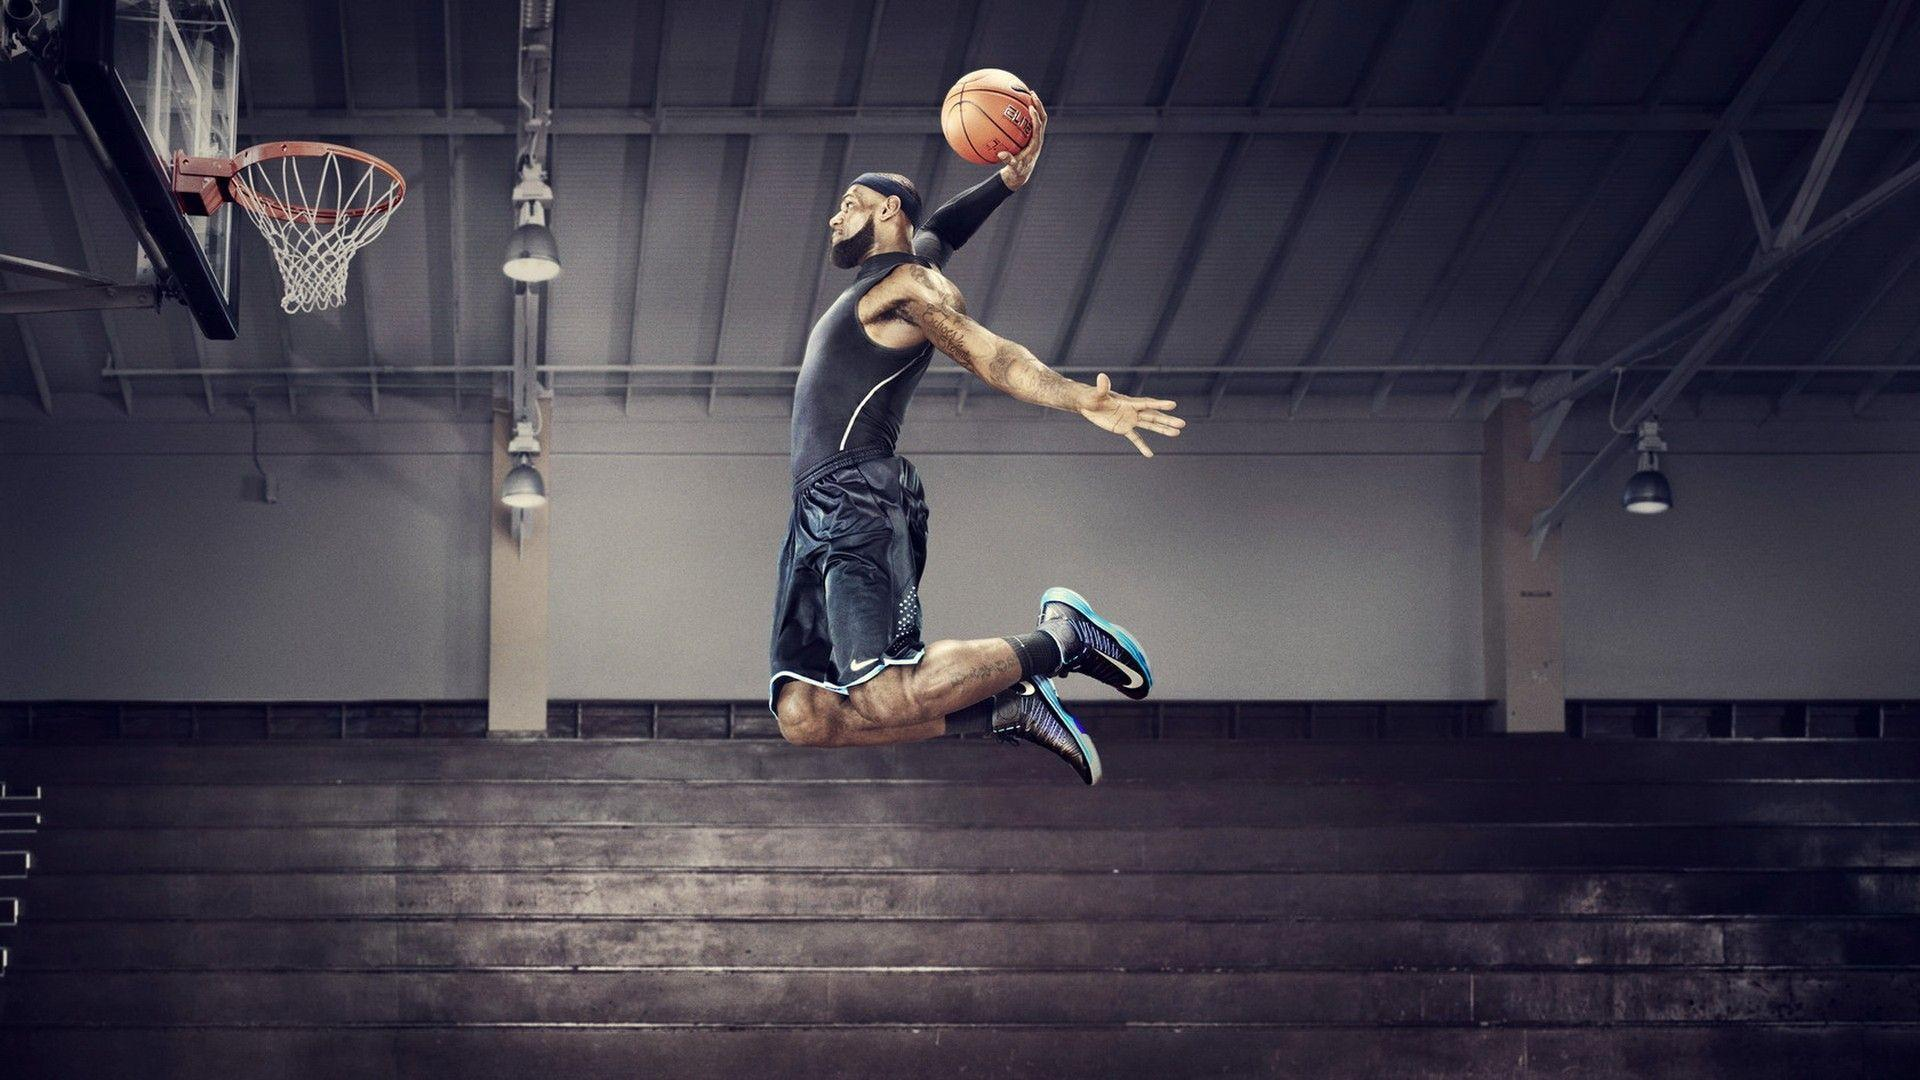 Lebron James Dunk 2014 Wallpapers Wide or HD